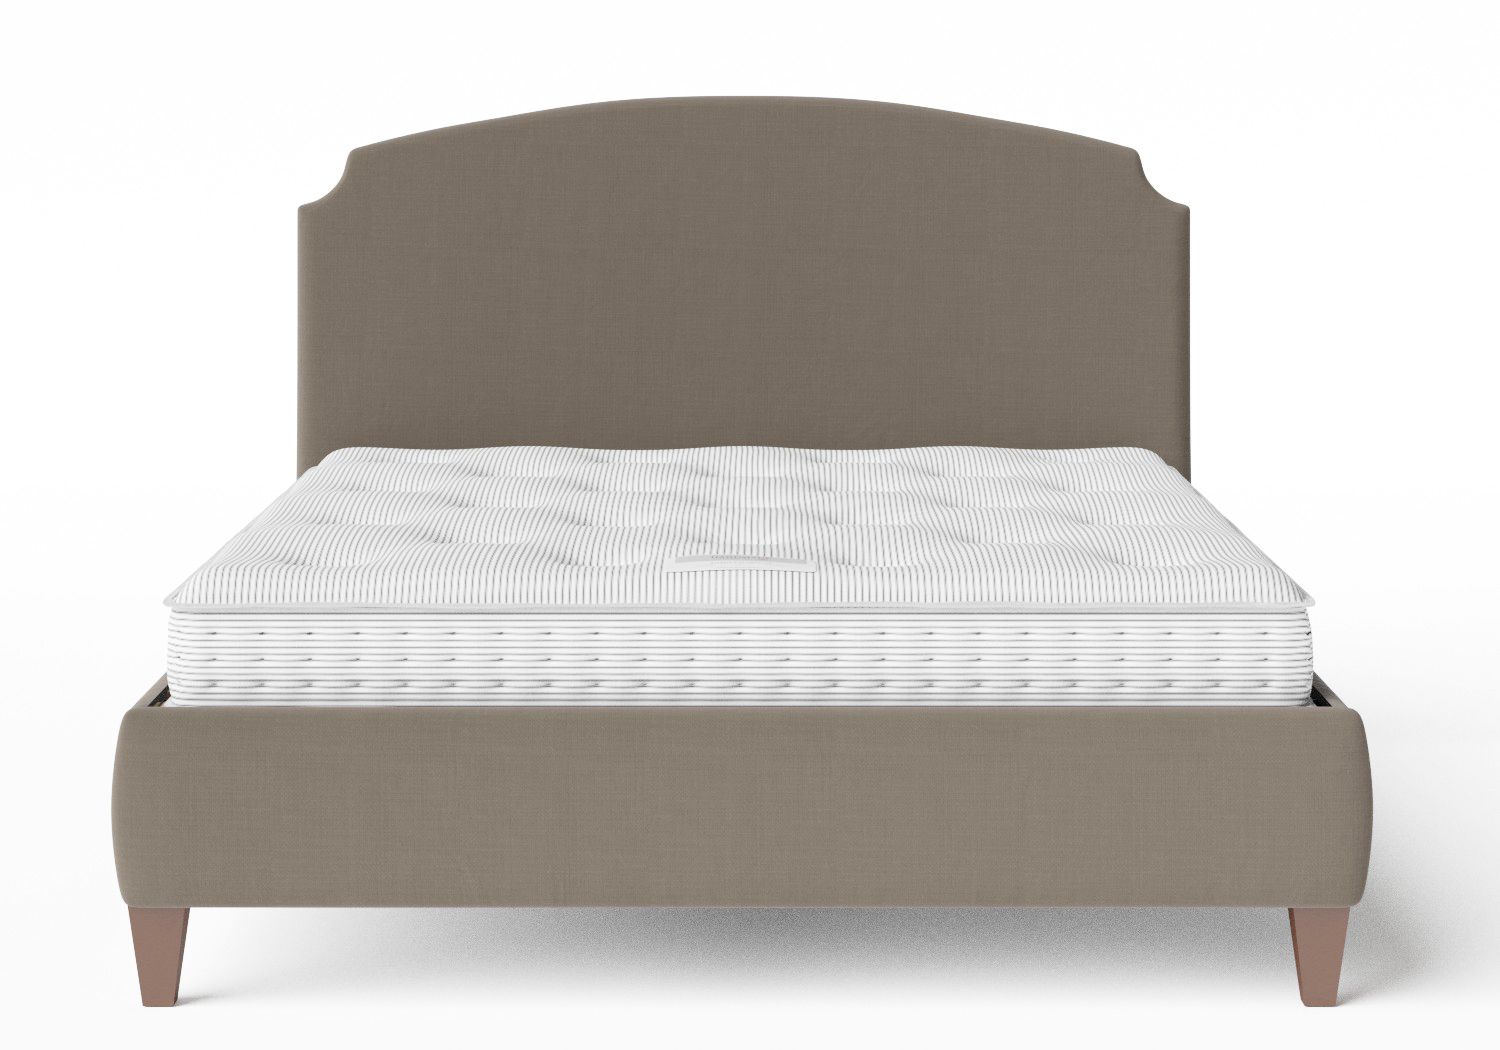 Lide Upholstered Bed in Grey fabric shown with Juno 1 mattress